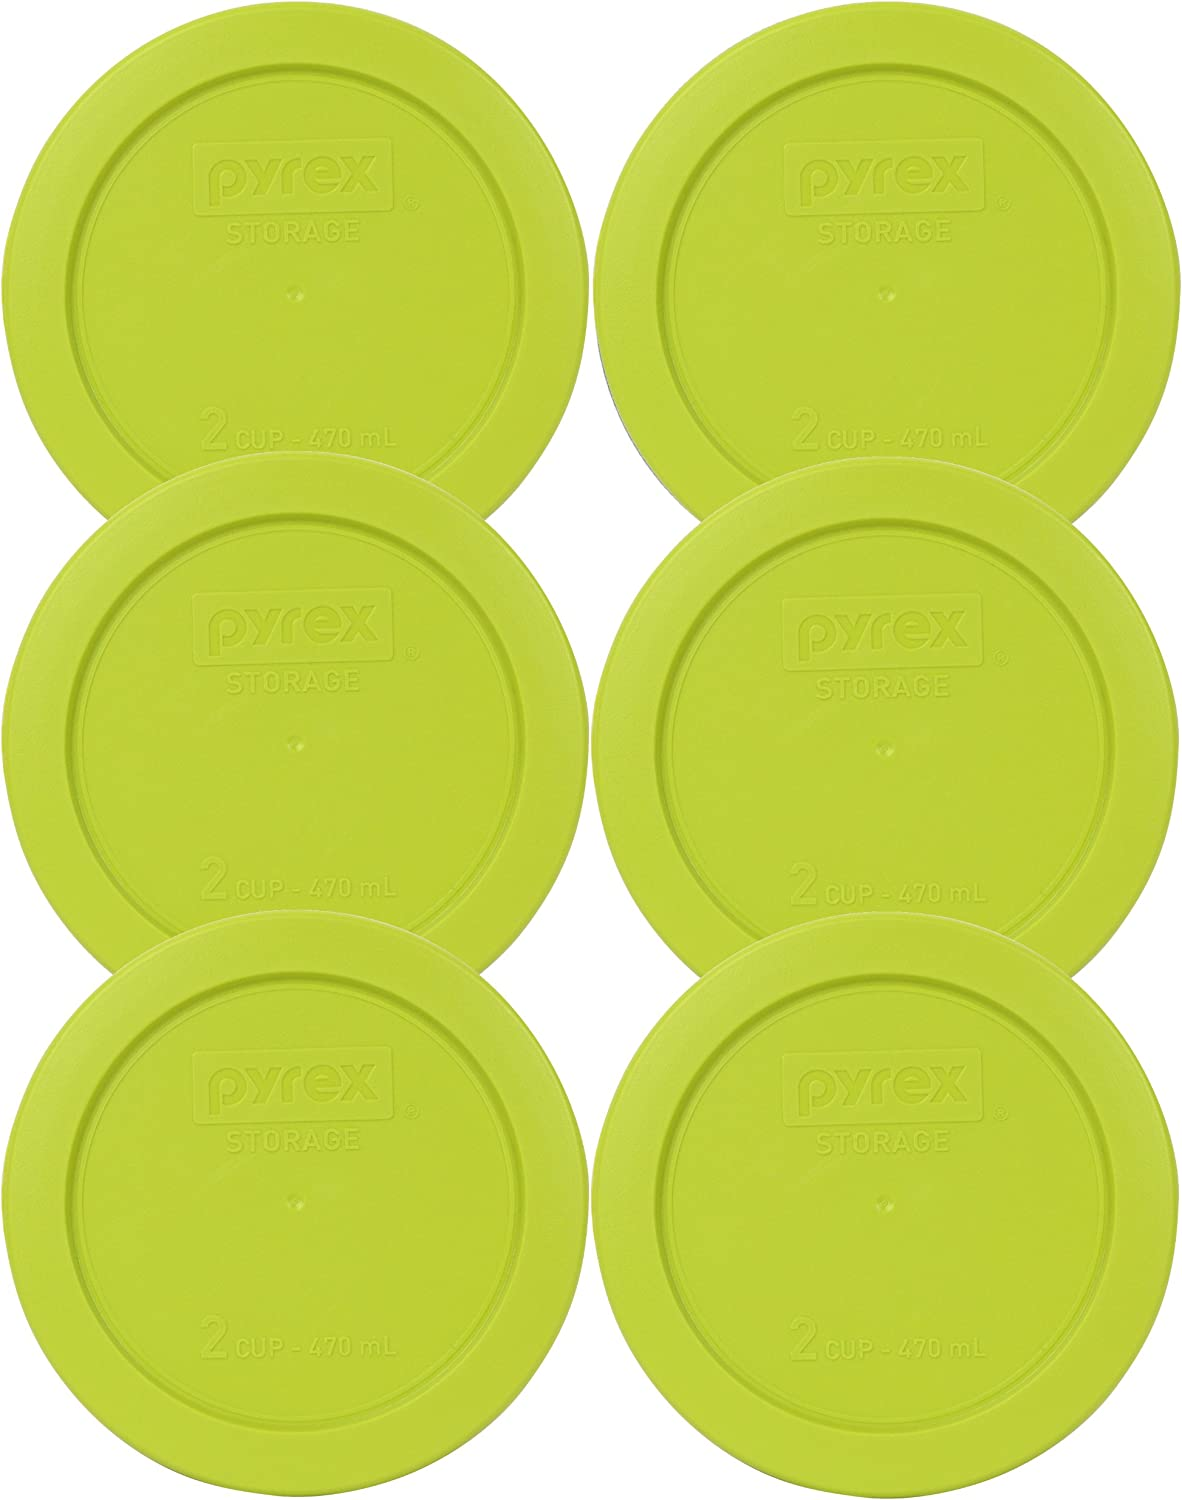 Pyrex Edamame 2 Cup Round Storage Cover #7200-PC for Glass Bowls 6-Pack